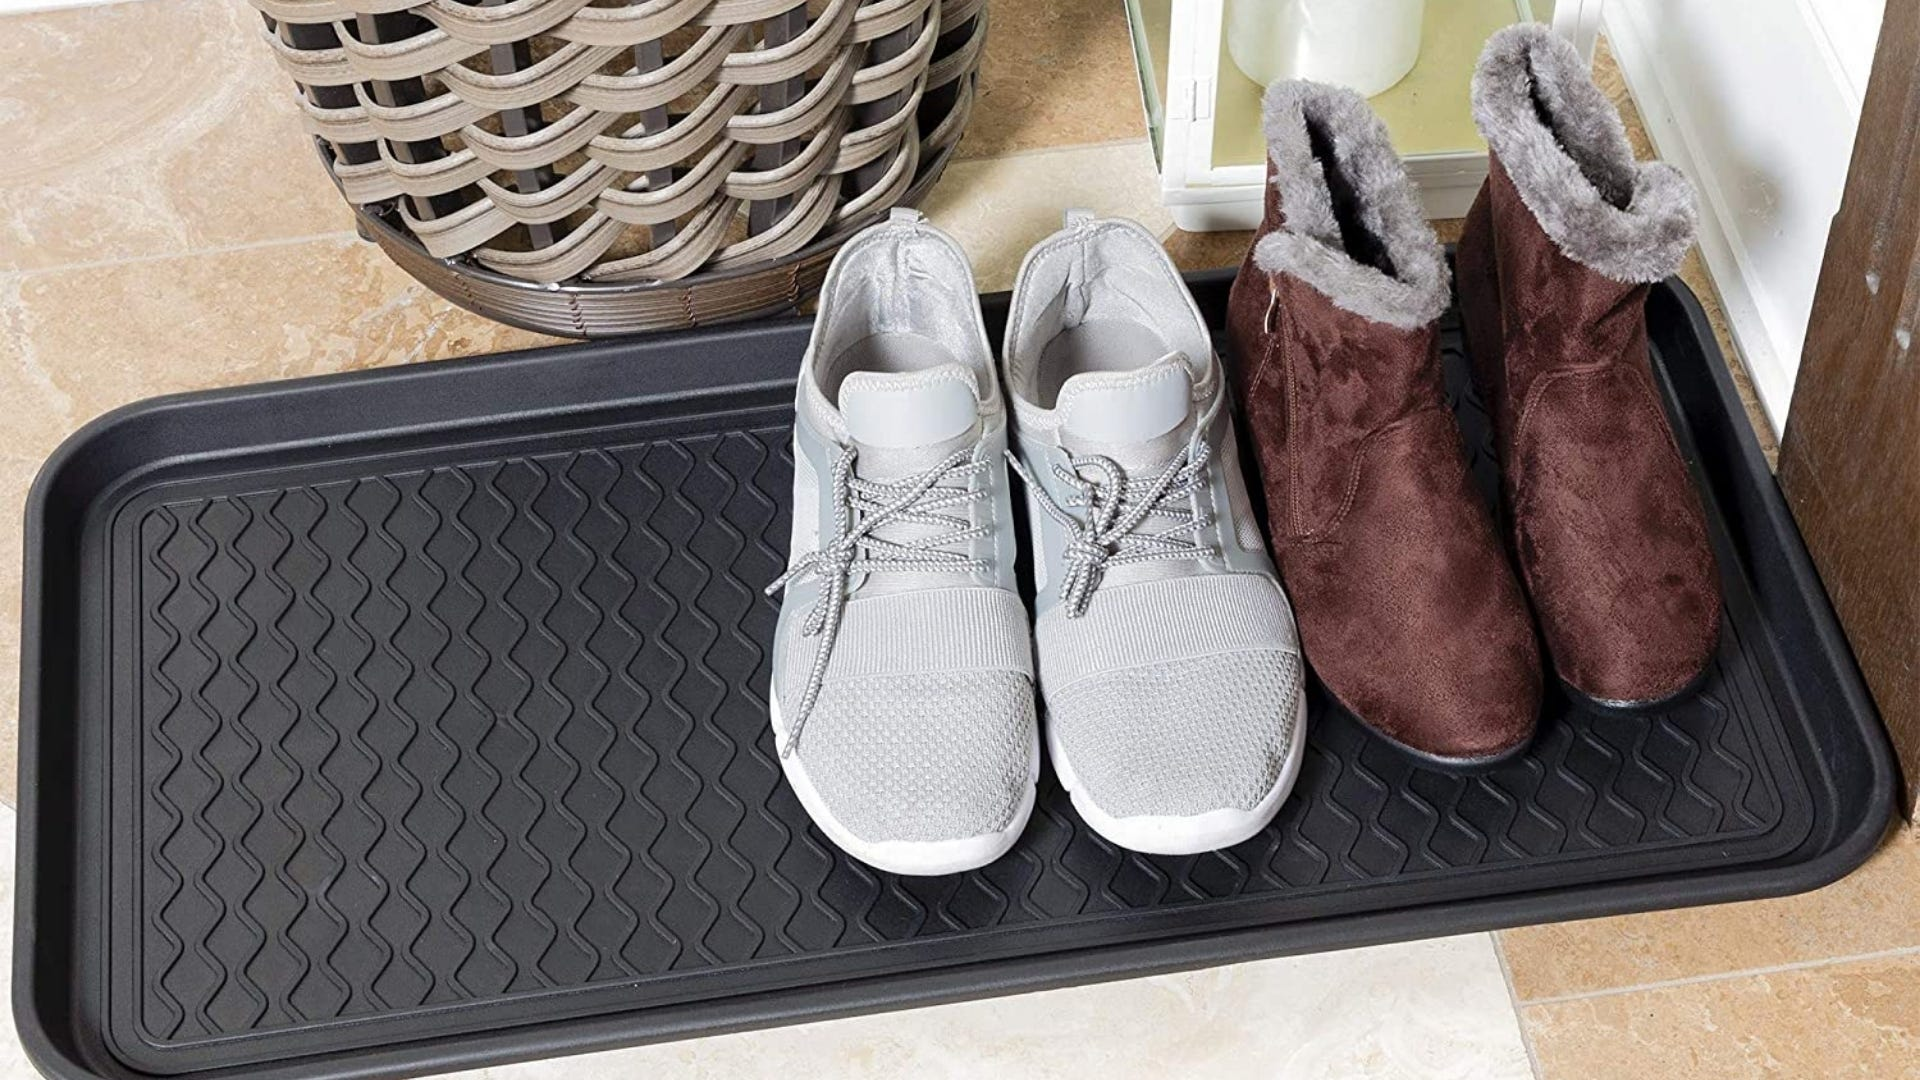 Shoe tray with two pairs of shoes inside